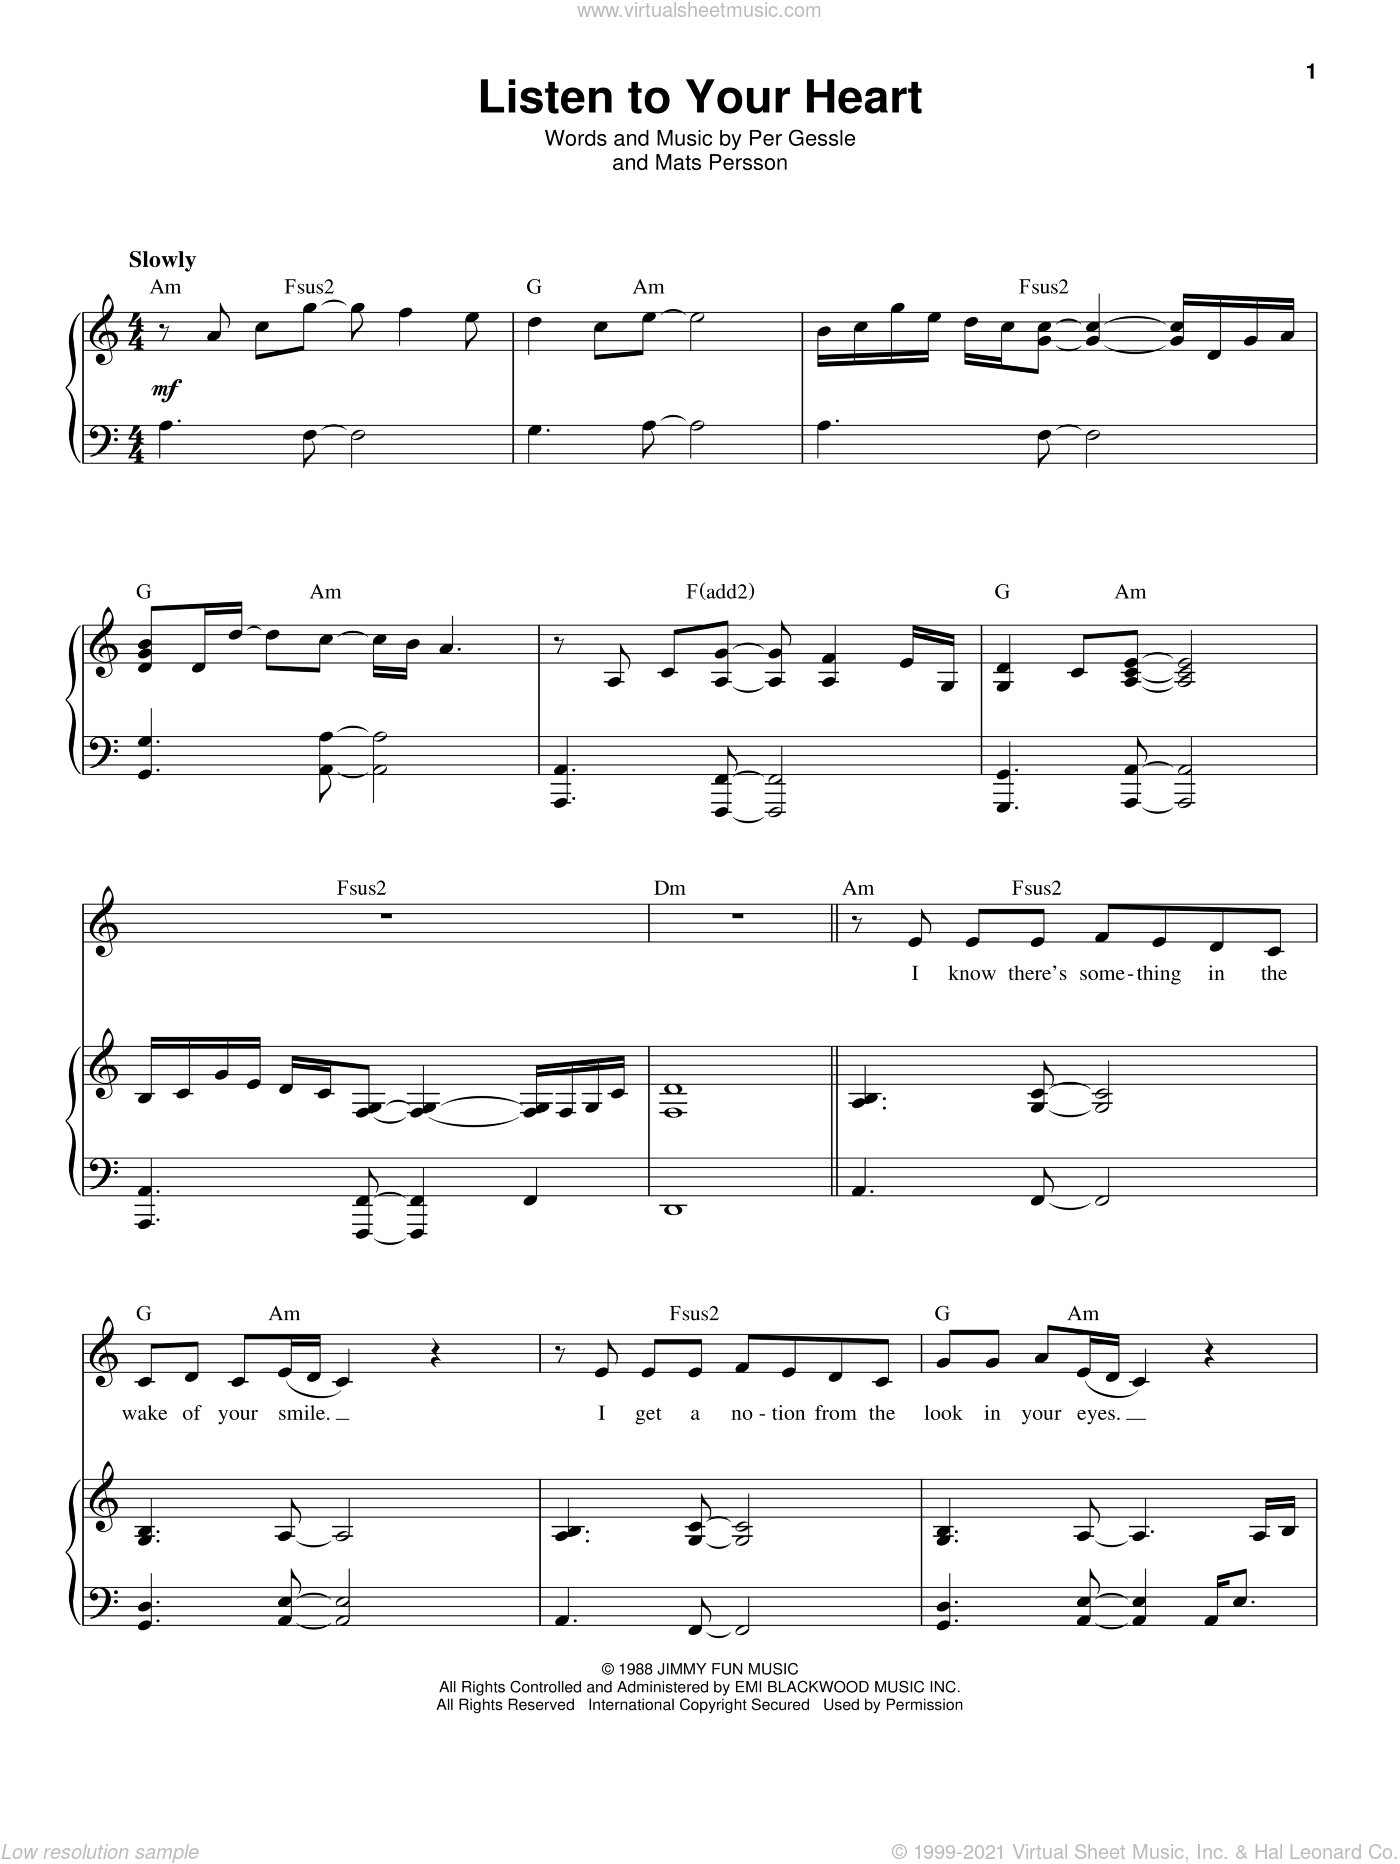 Listen To Your Heart sheet music for voice and piano by D.H.T., Roxette, Mats Persson and Per Gessle, intermediate skill level